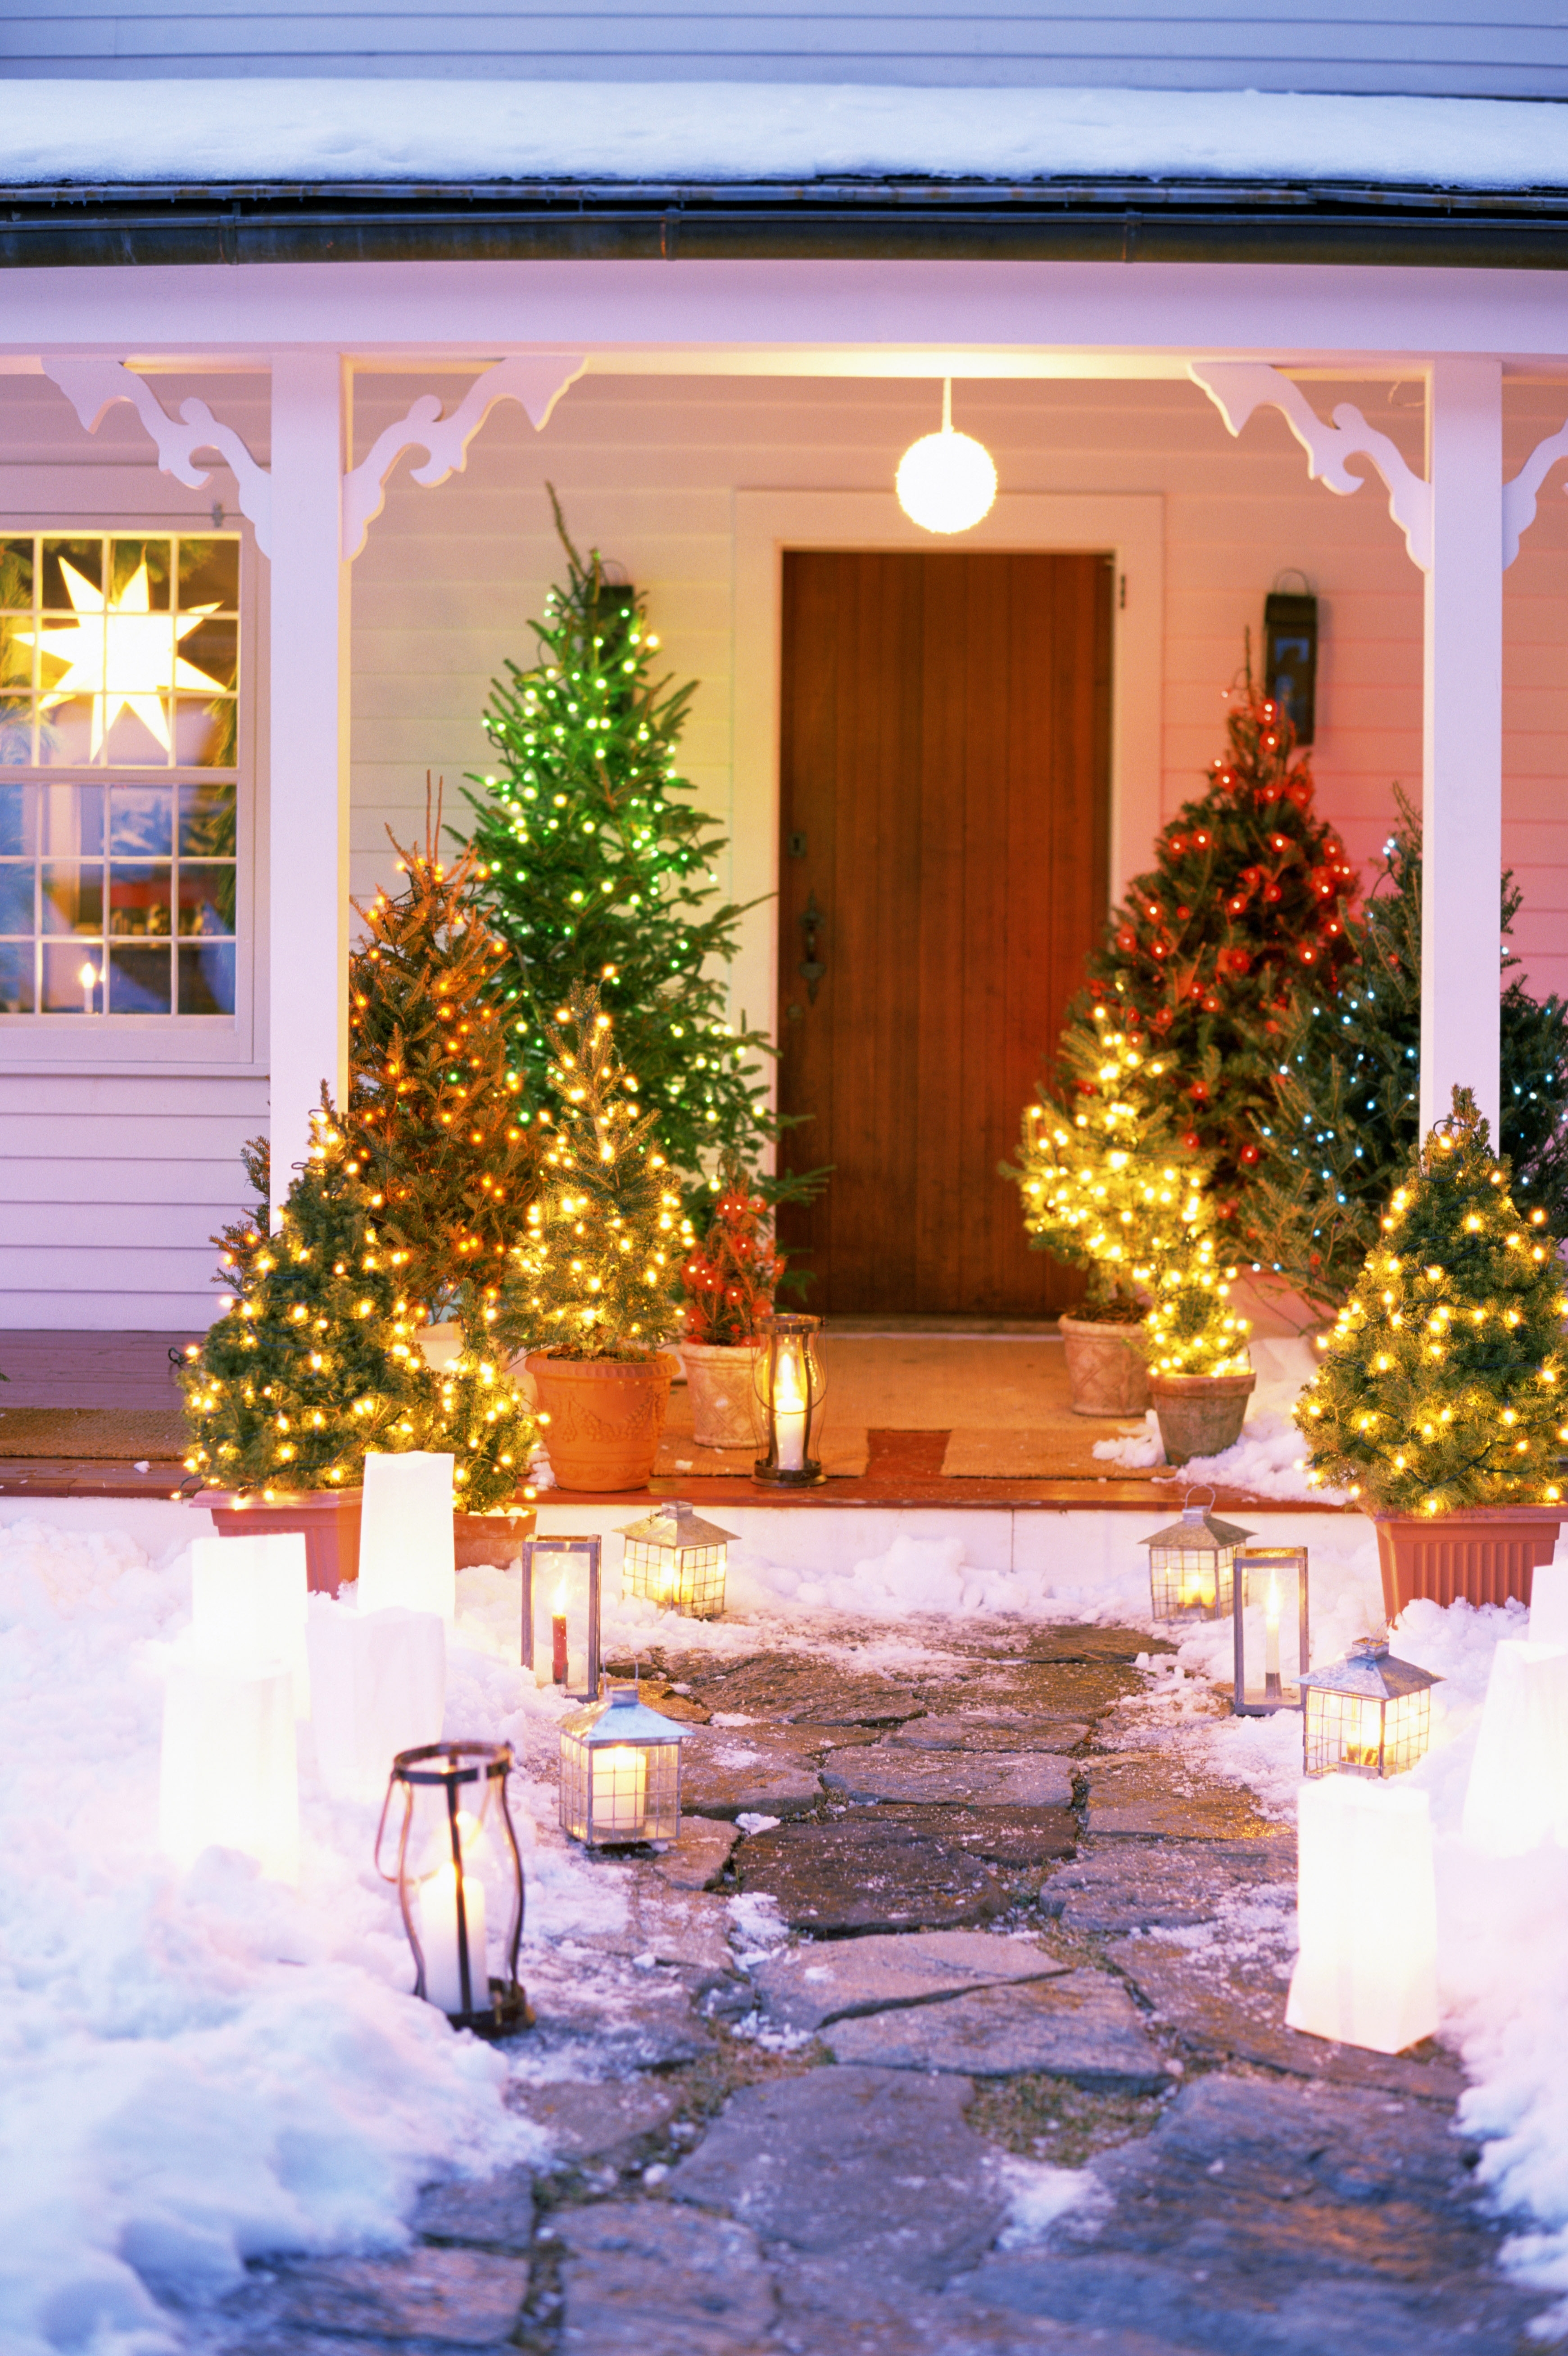 Christmas Exterior Lighting Ideas Lightingchristmas Marvelous intended for Outdoor Holiday Lanterns (Image 10 of 20)